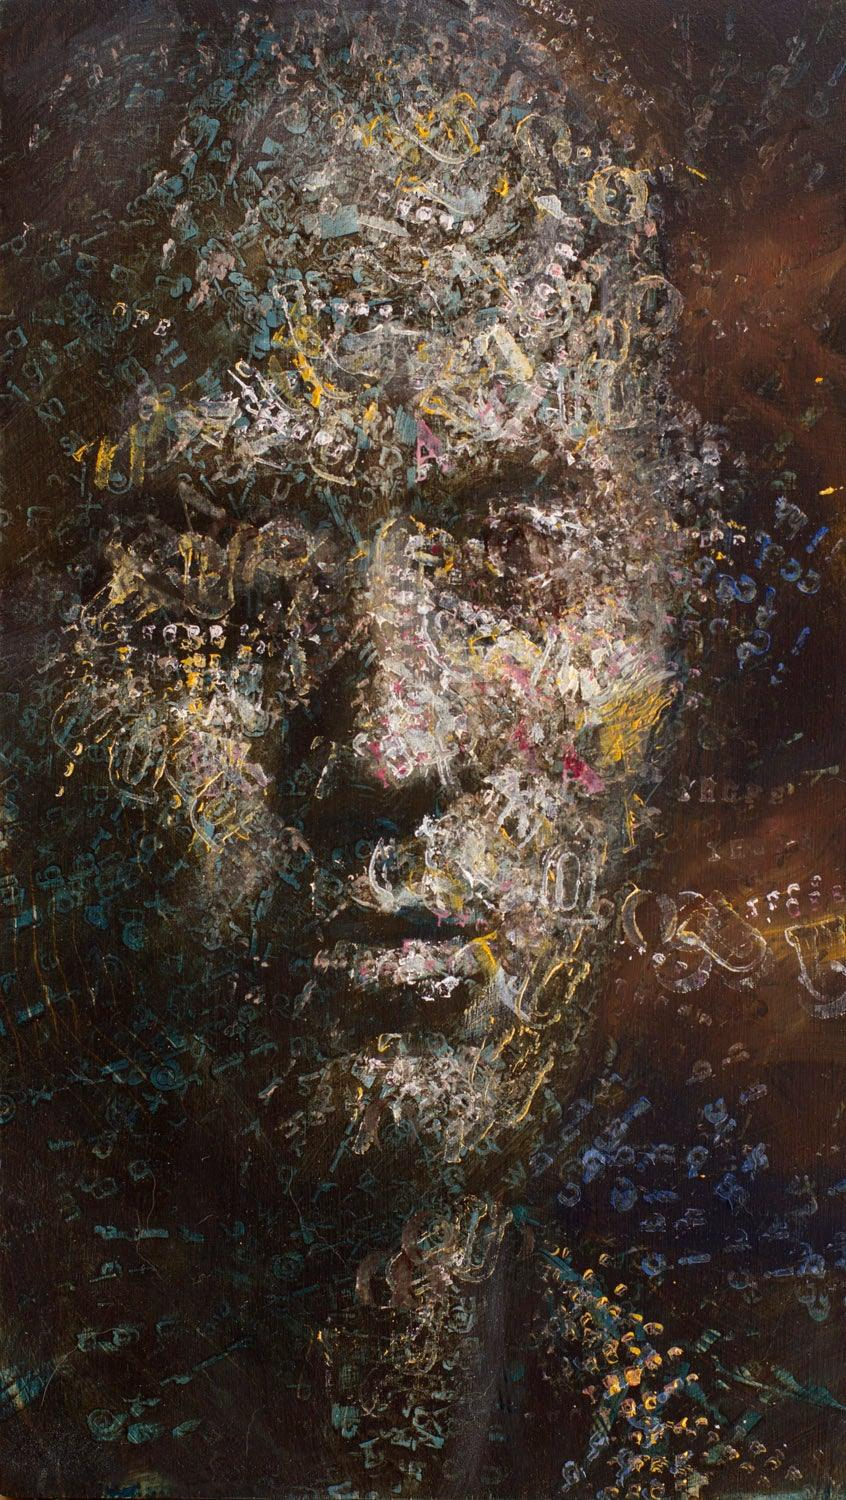 AutoGraphia, Oil on Panel 6 5/8